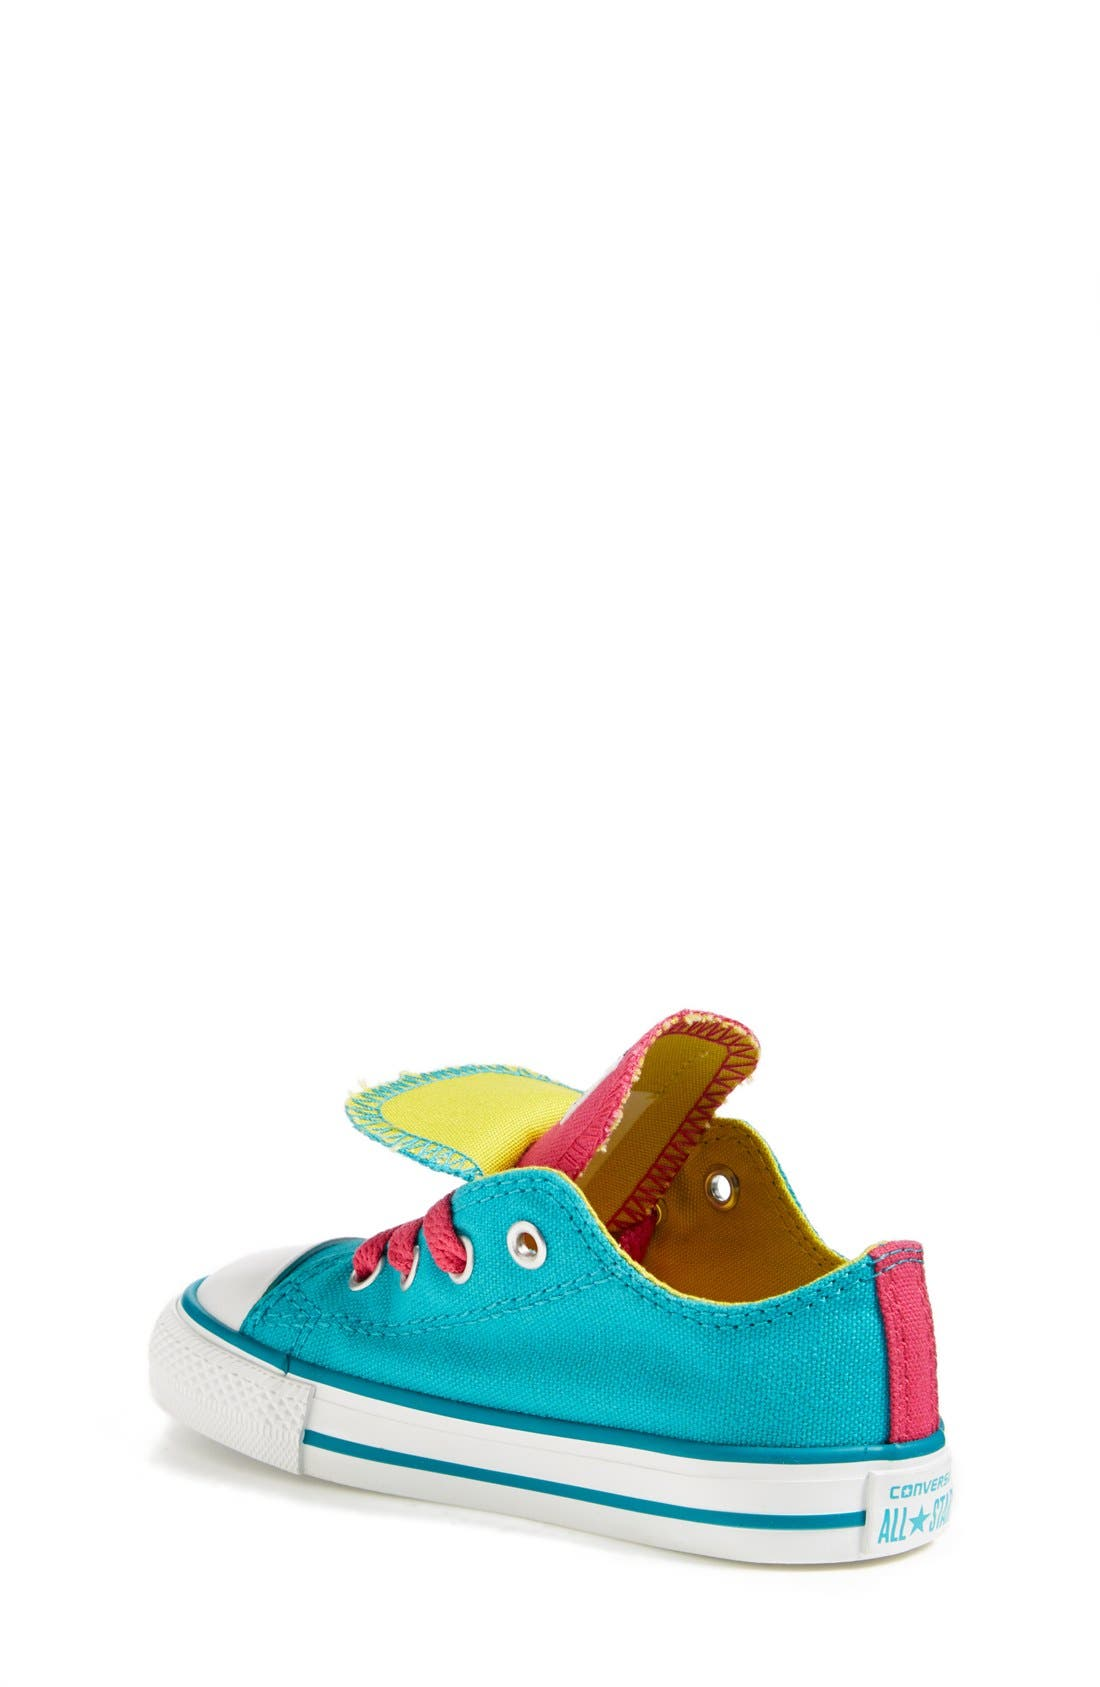 Alternate Image 2  - Converse Chuck Taylor® All Star® 'Double Tongue' Sneaker (Baby, Walker, Toddler, Little Kid & Big Kid)